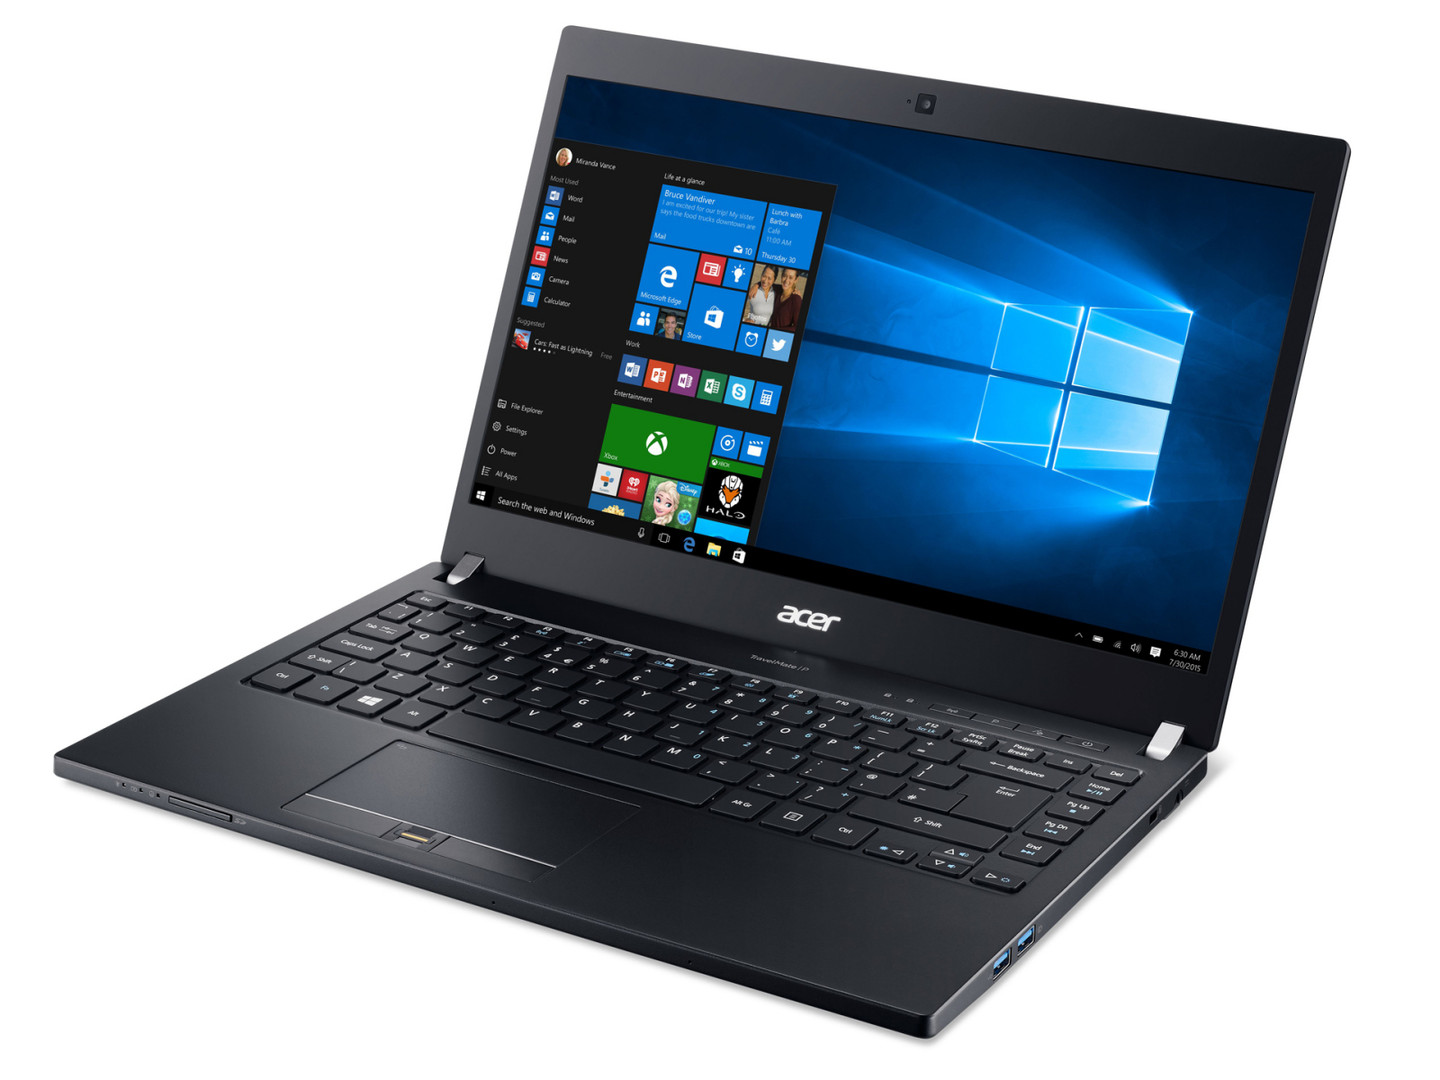 ACER TRAVELMATE P648-M WINDOWS 8.1 DRIVER